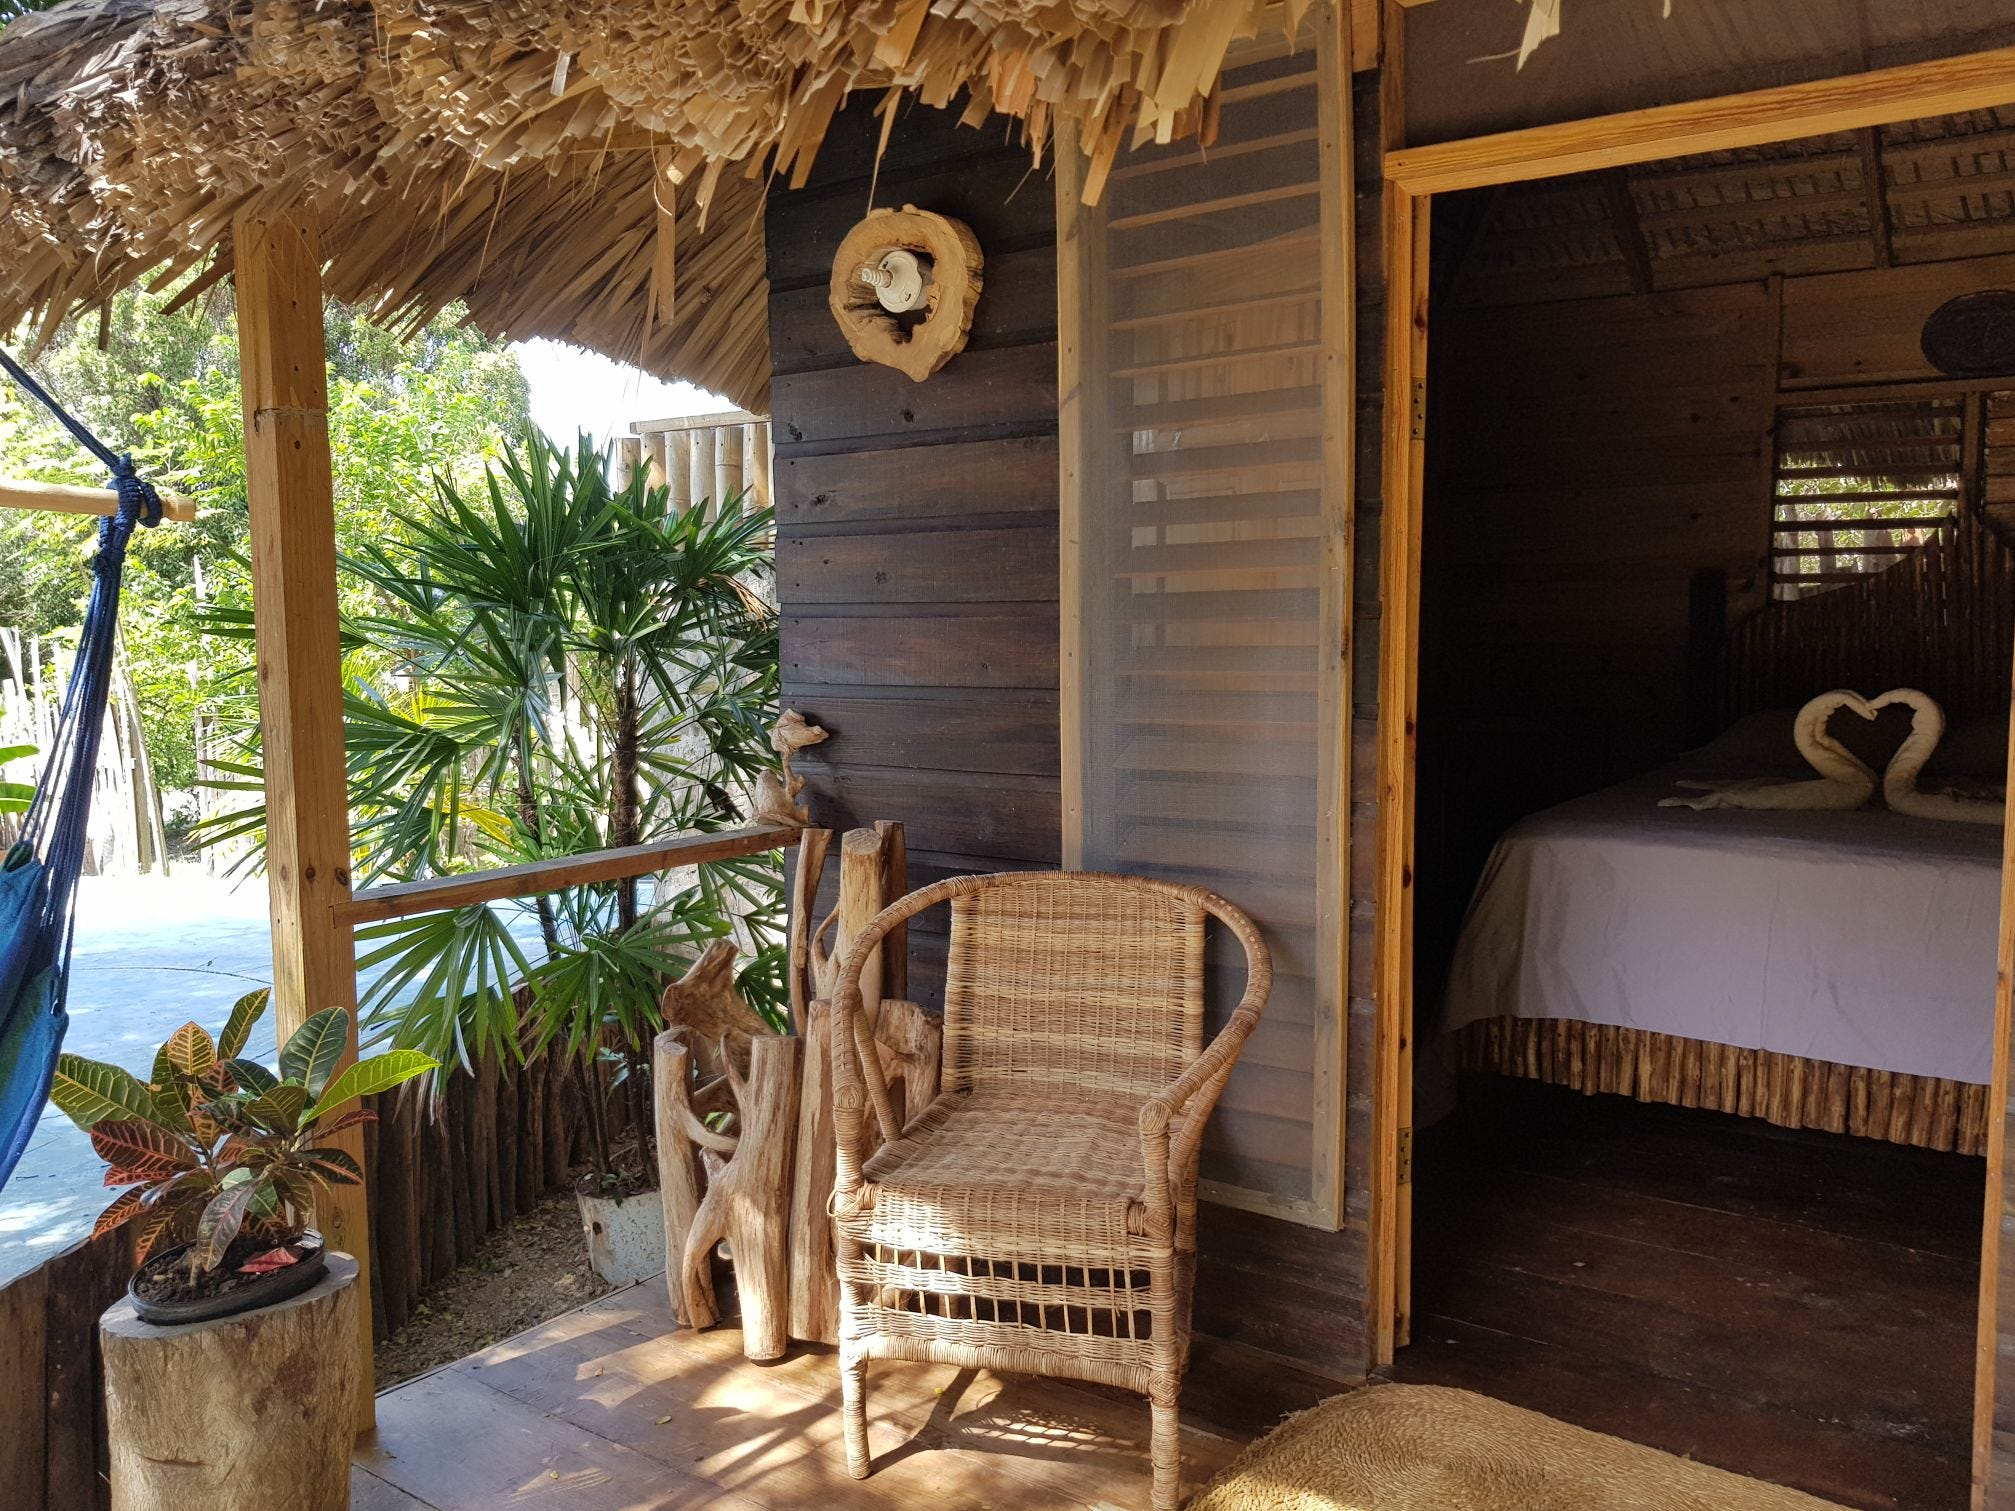 A private room at a cabin in Jamaica